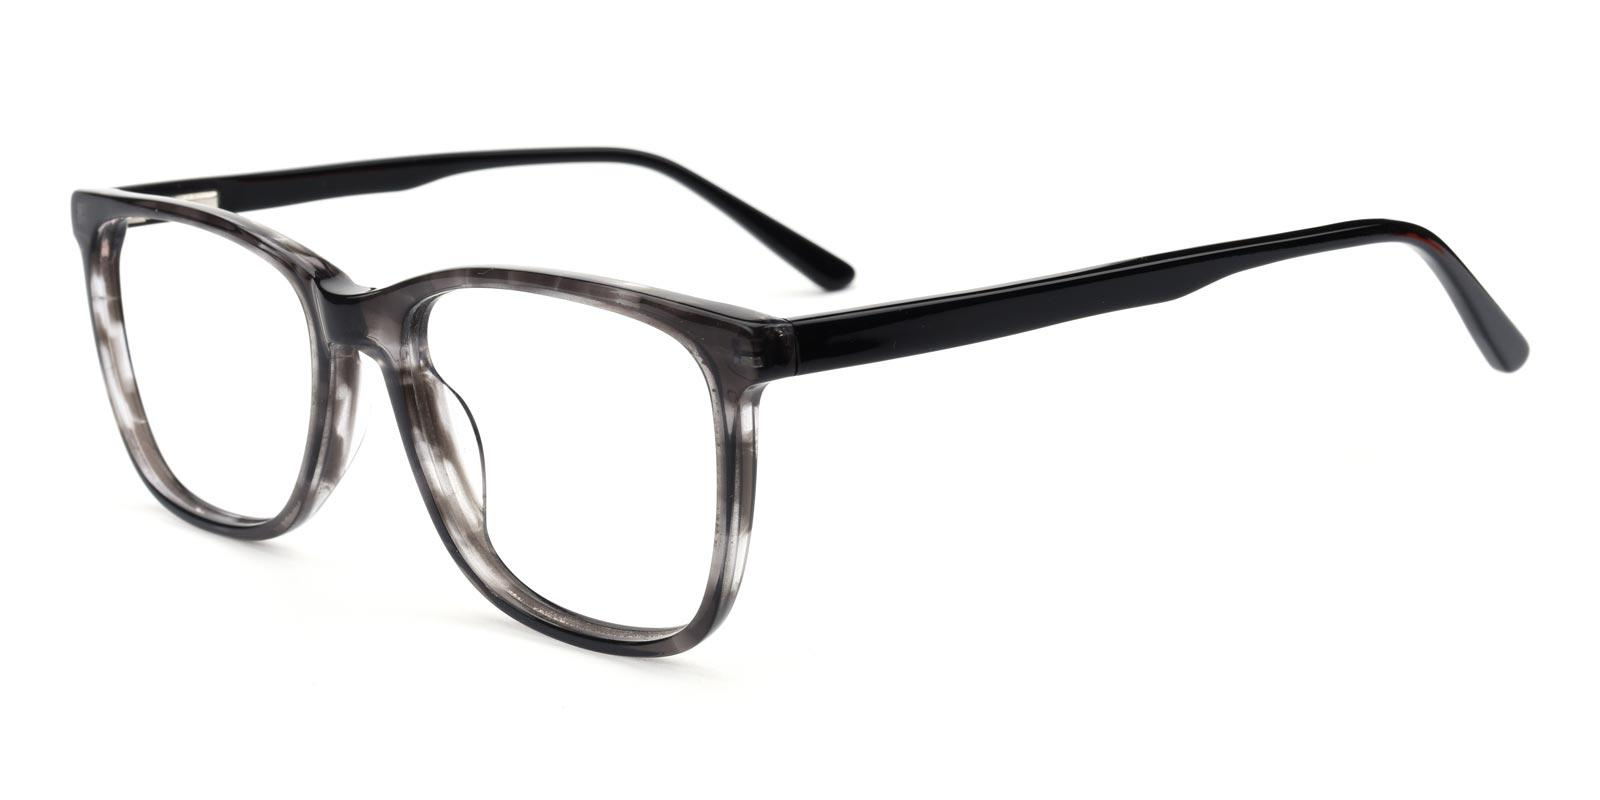 Genter-Gray-Square-Acetate-Eyeglasses-additional1